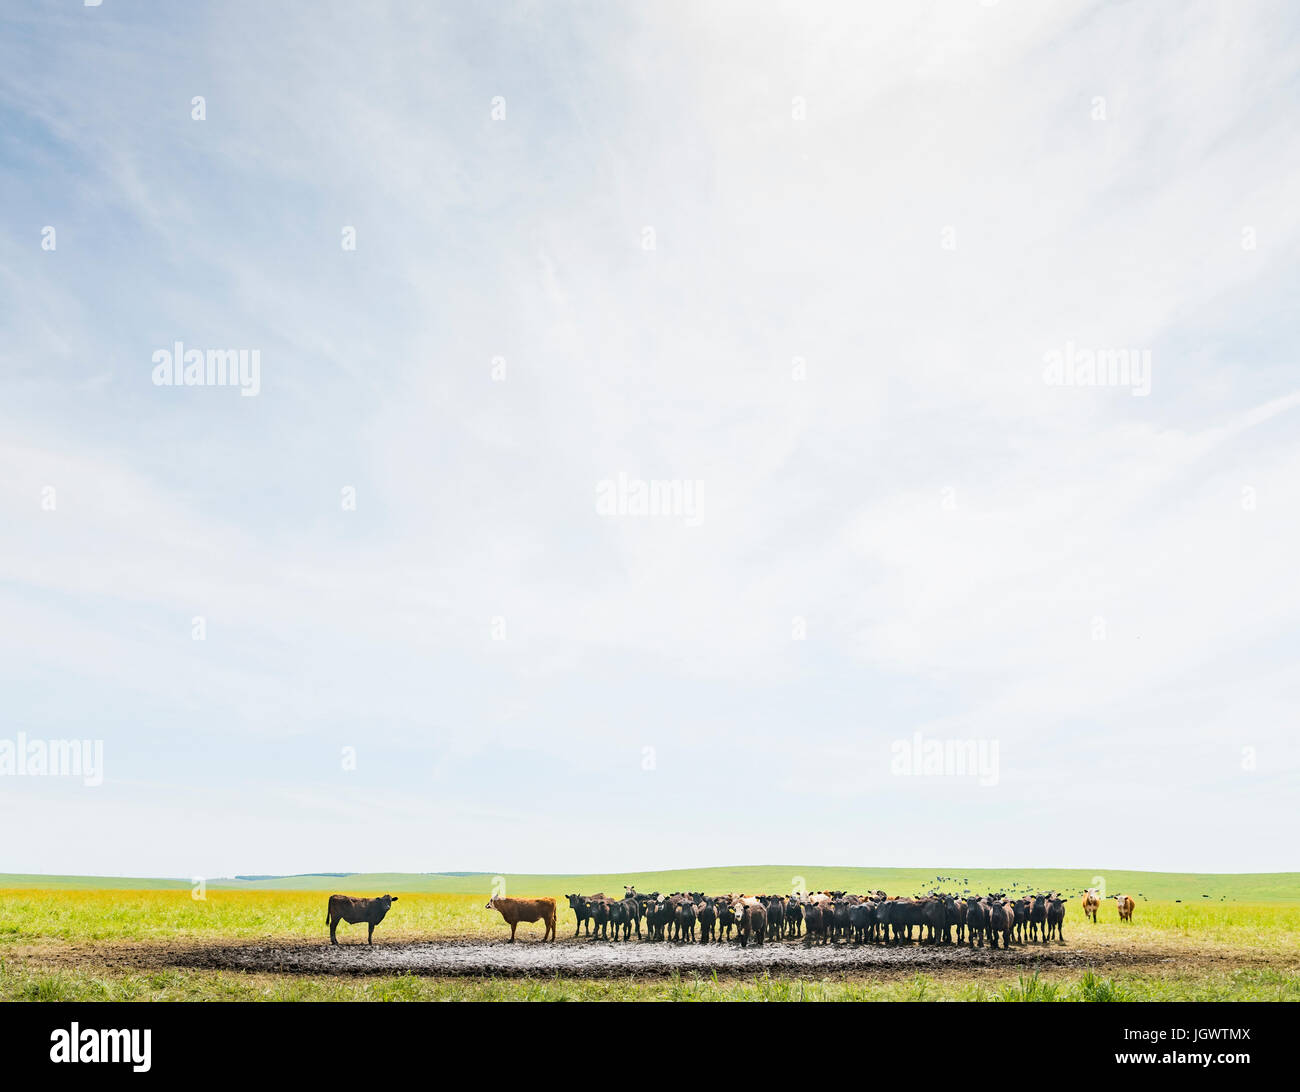 Herd of cows at watering hole in field landscape - Stock Image